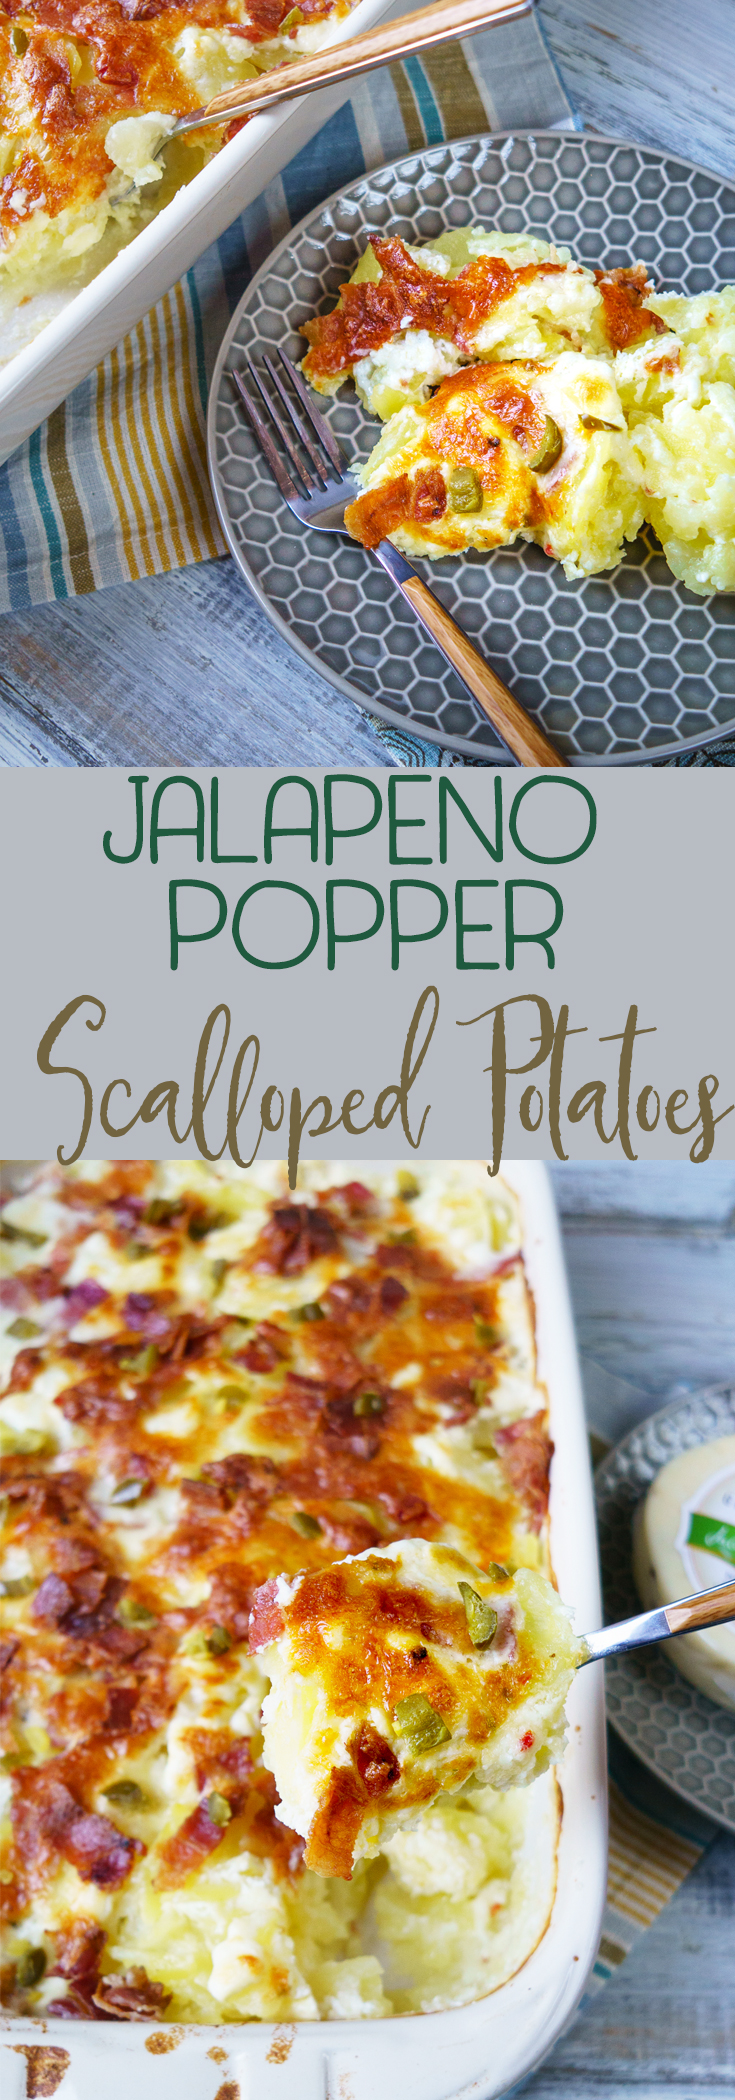 Scalloped potatoes with bacon and jalapenos adds a spicy twist on your favorite creamy and cheesy dish. Features jack cheese, cream cheese, bacon and more! #ad #GreatMidwestCheeses #scallopedpotatoes #potatoesaugratin #bacon